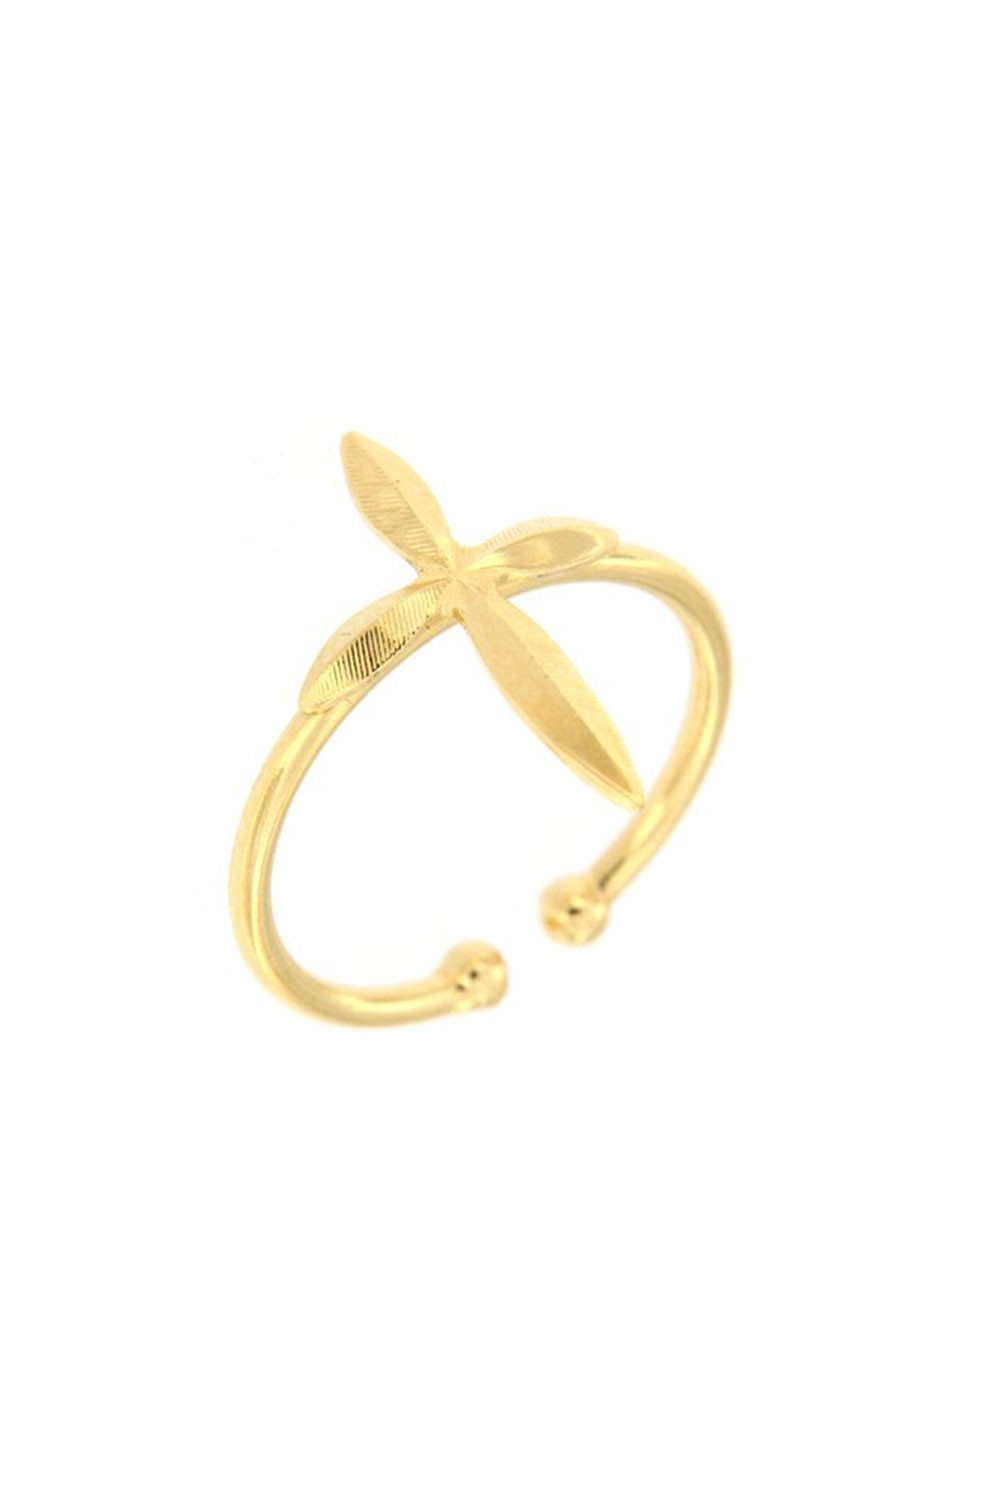 Adjustablering  24 carats fine gold  New collection